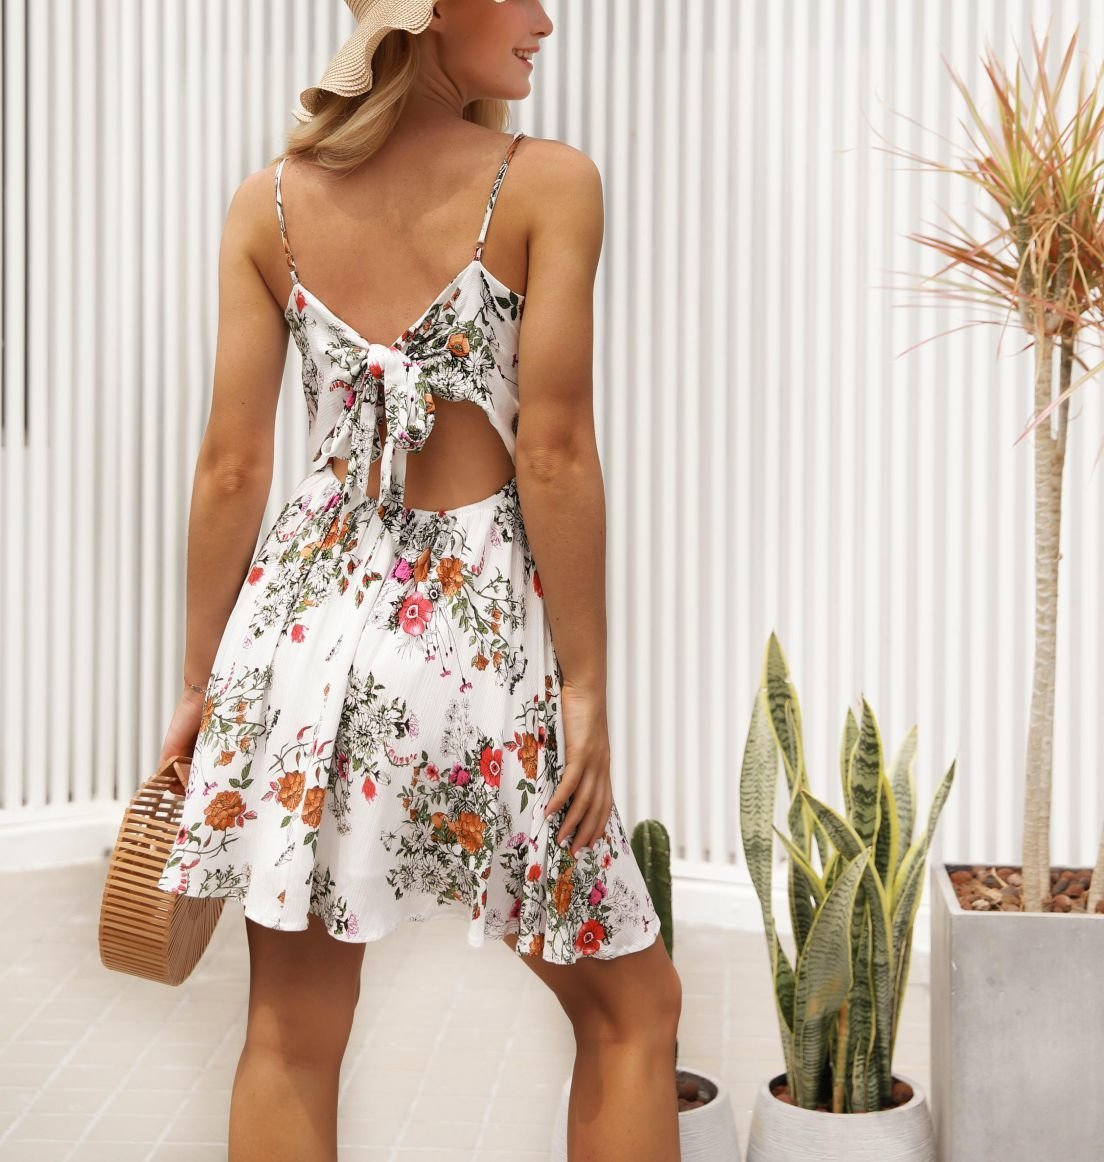 Floral Dress with Lace and Fringe Bodice